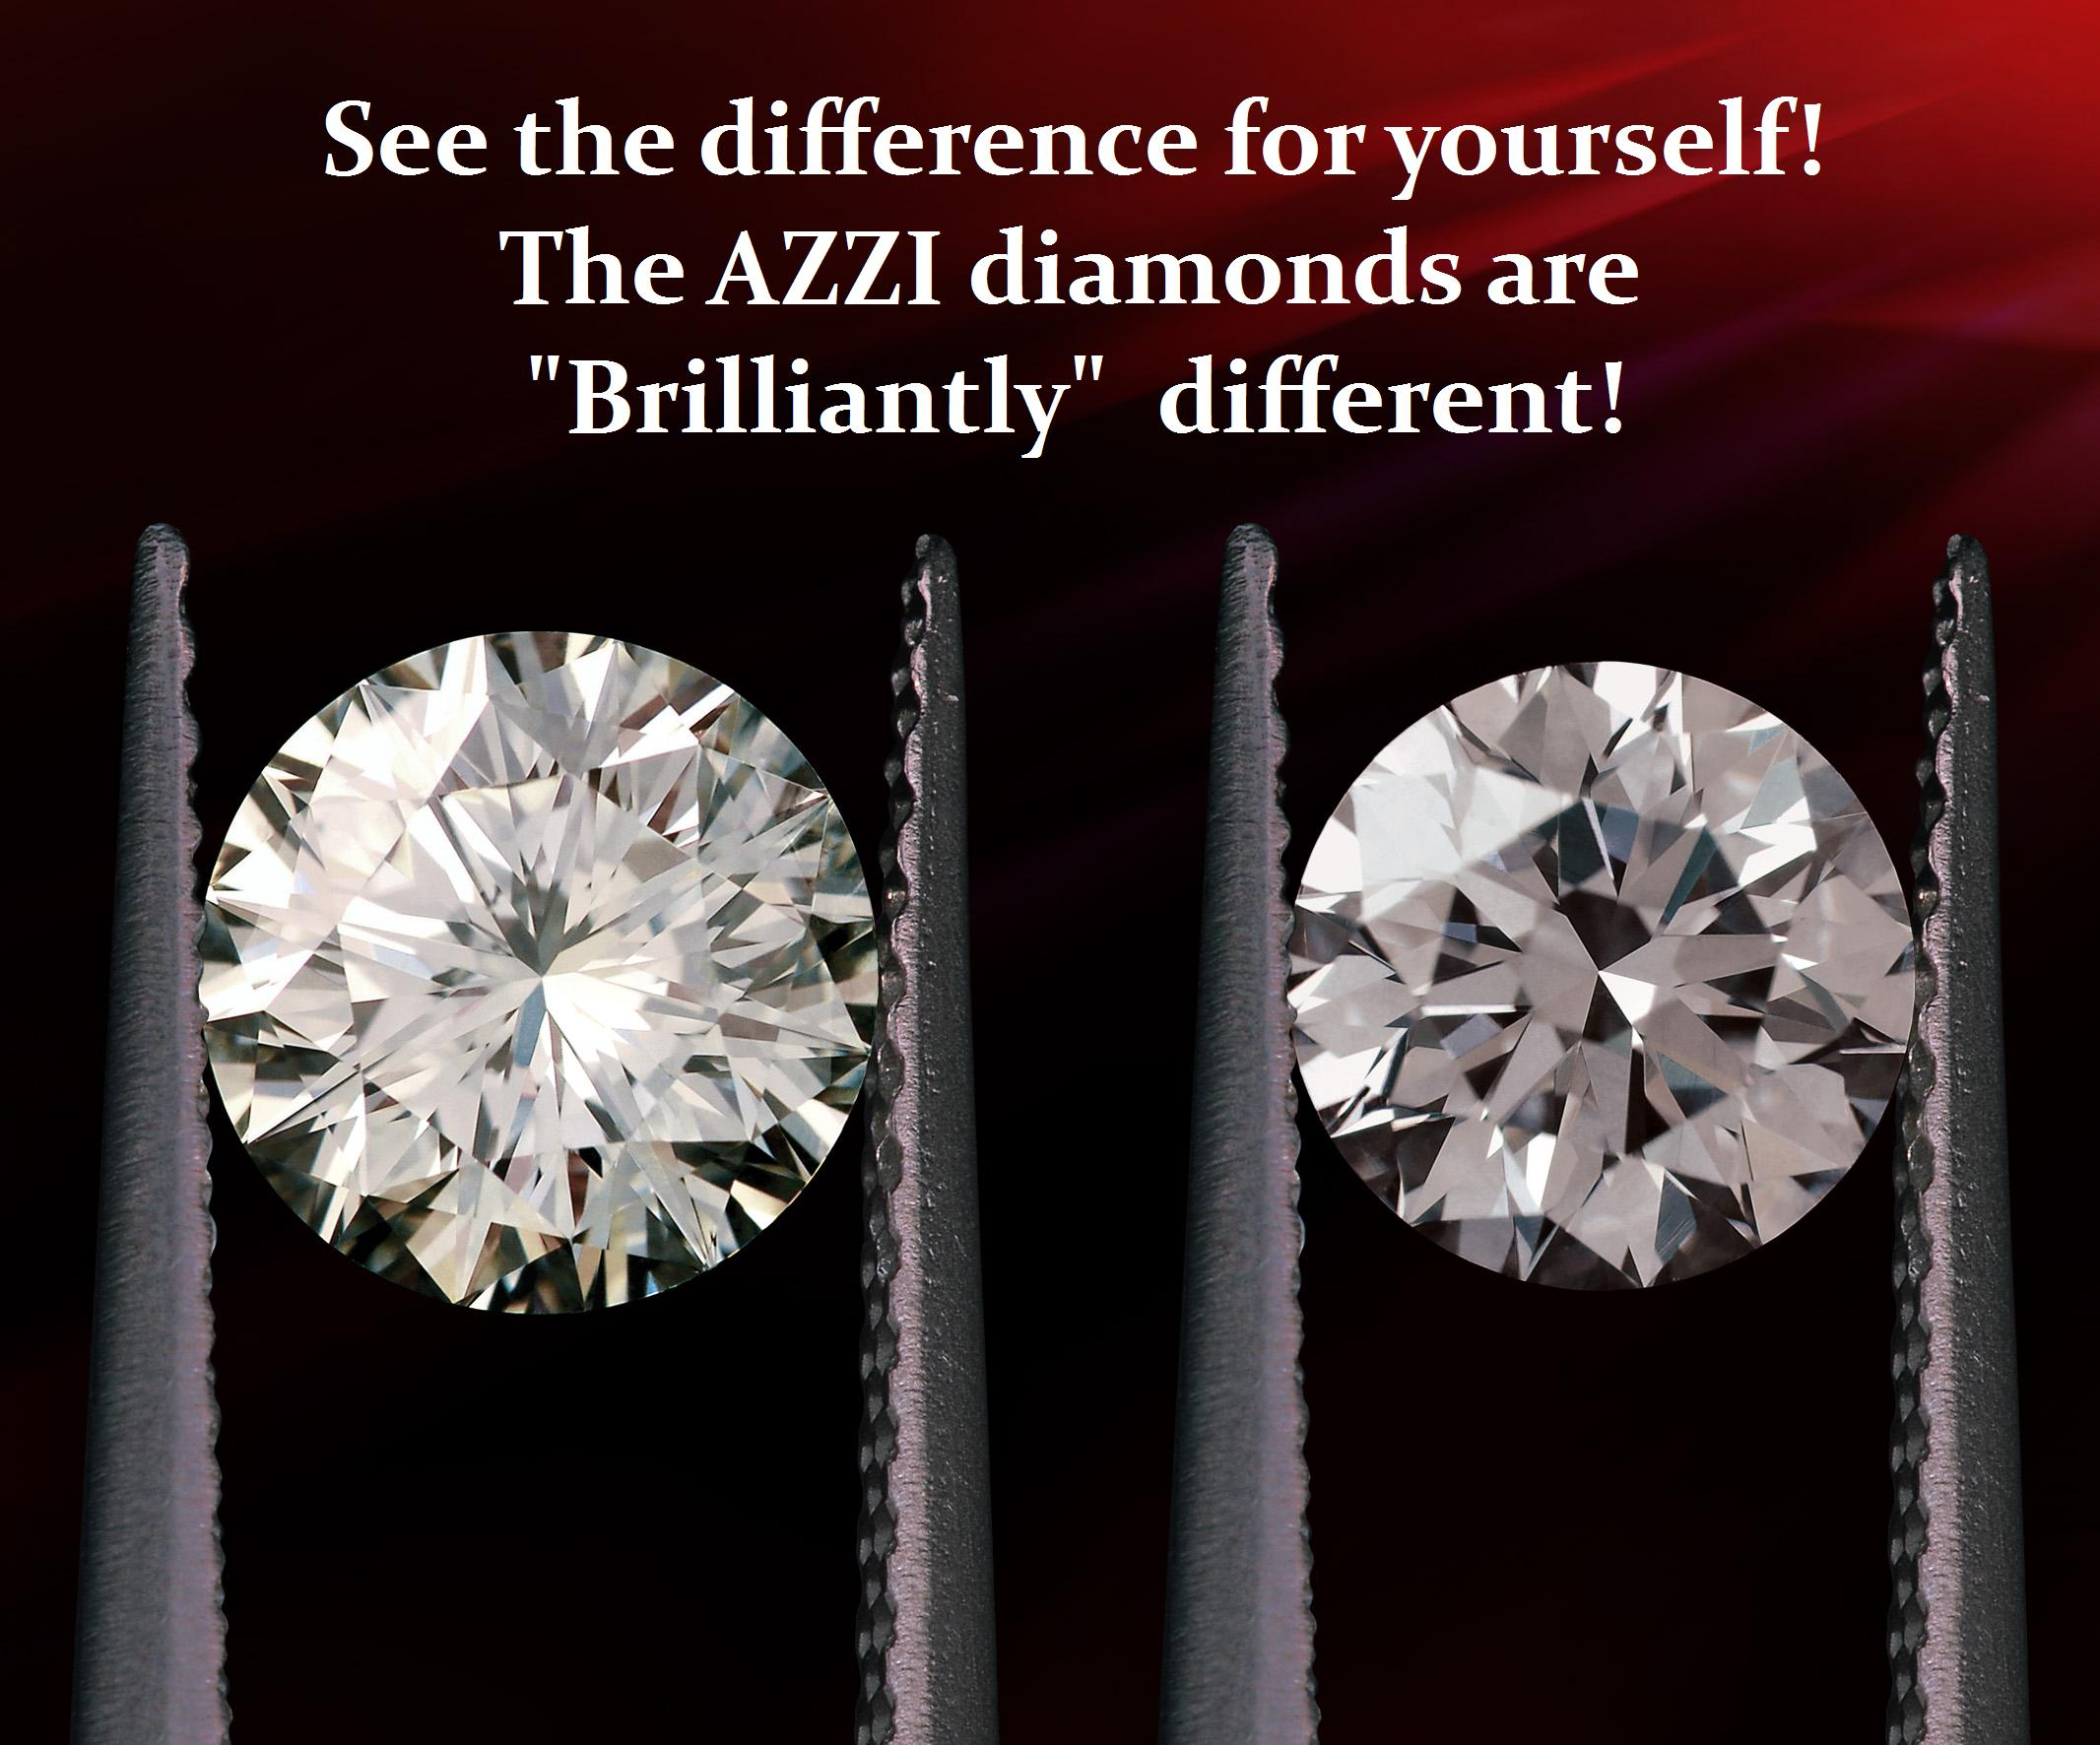 Did you know these fun facts about diamonds?